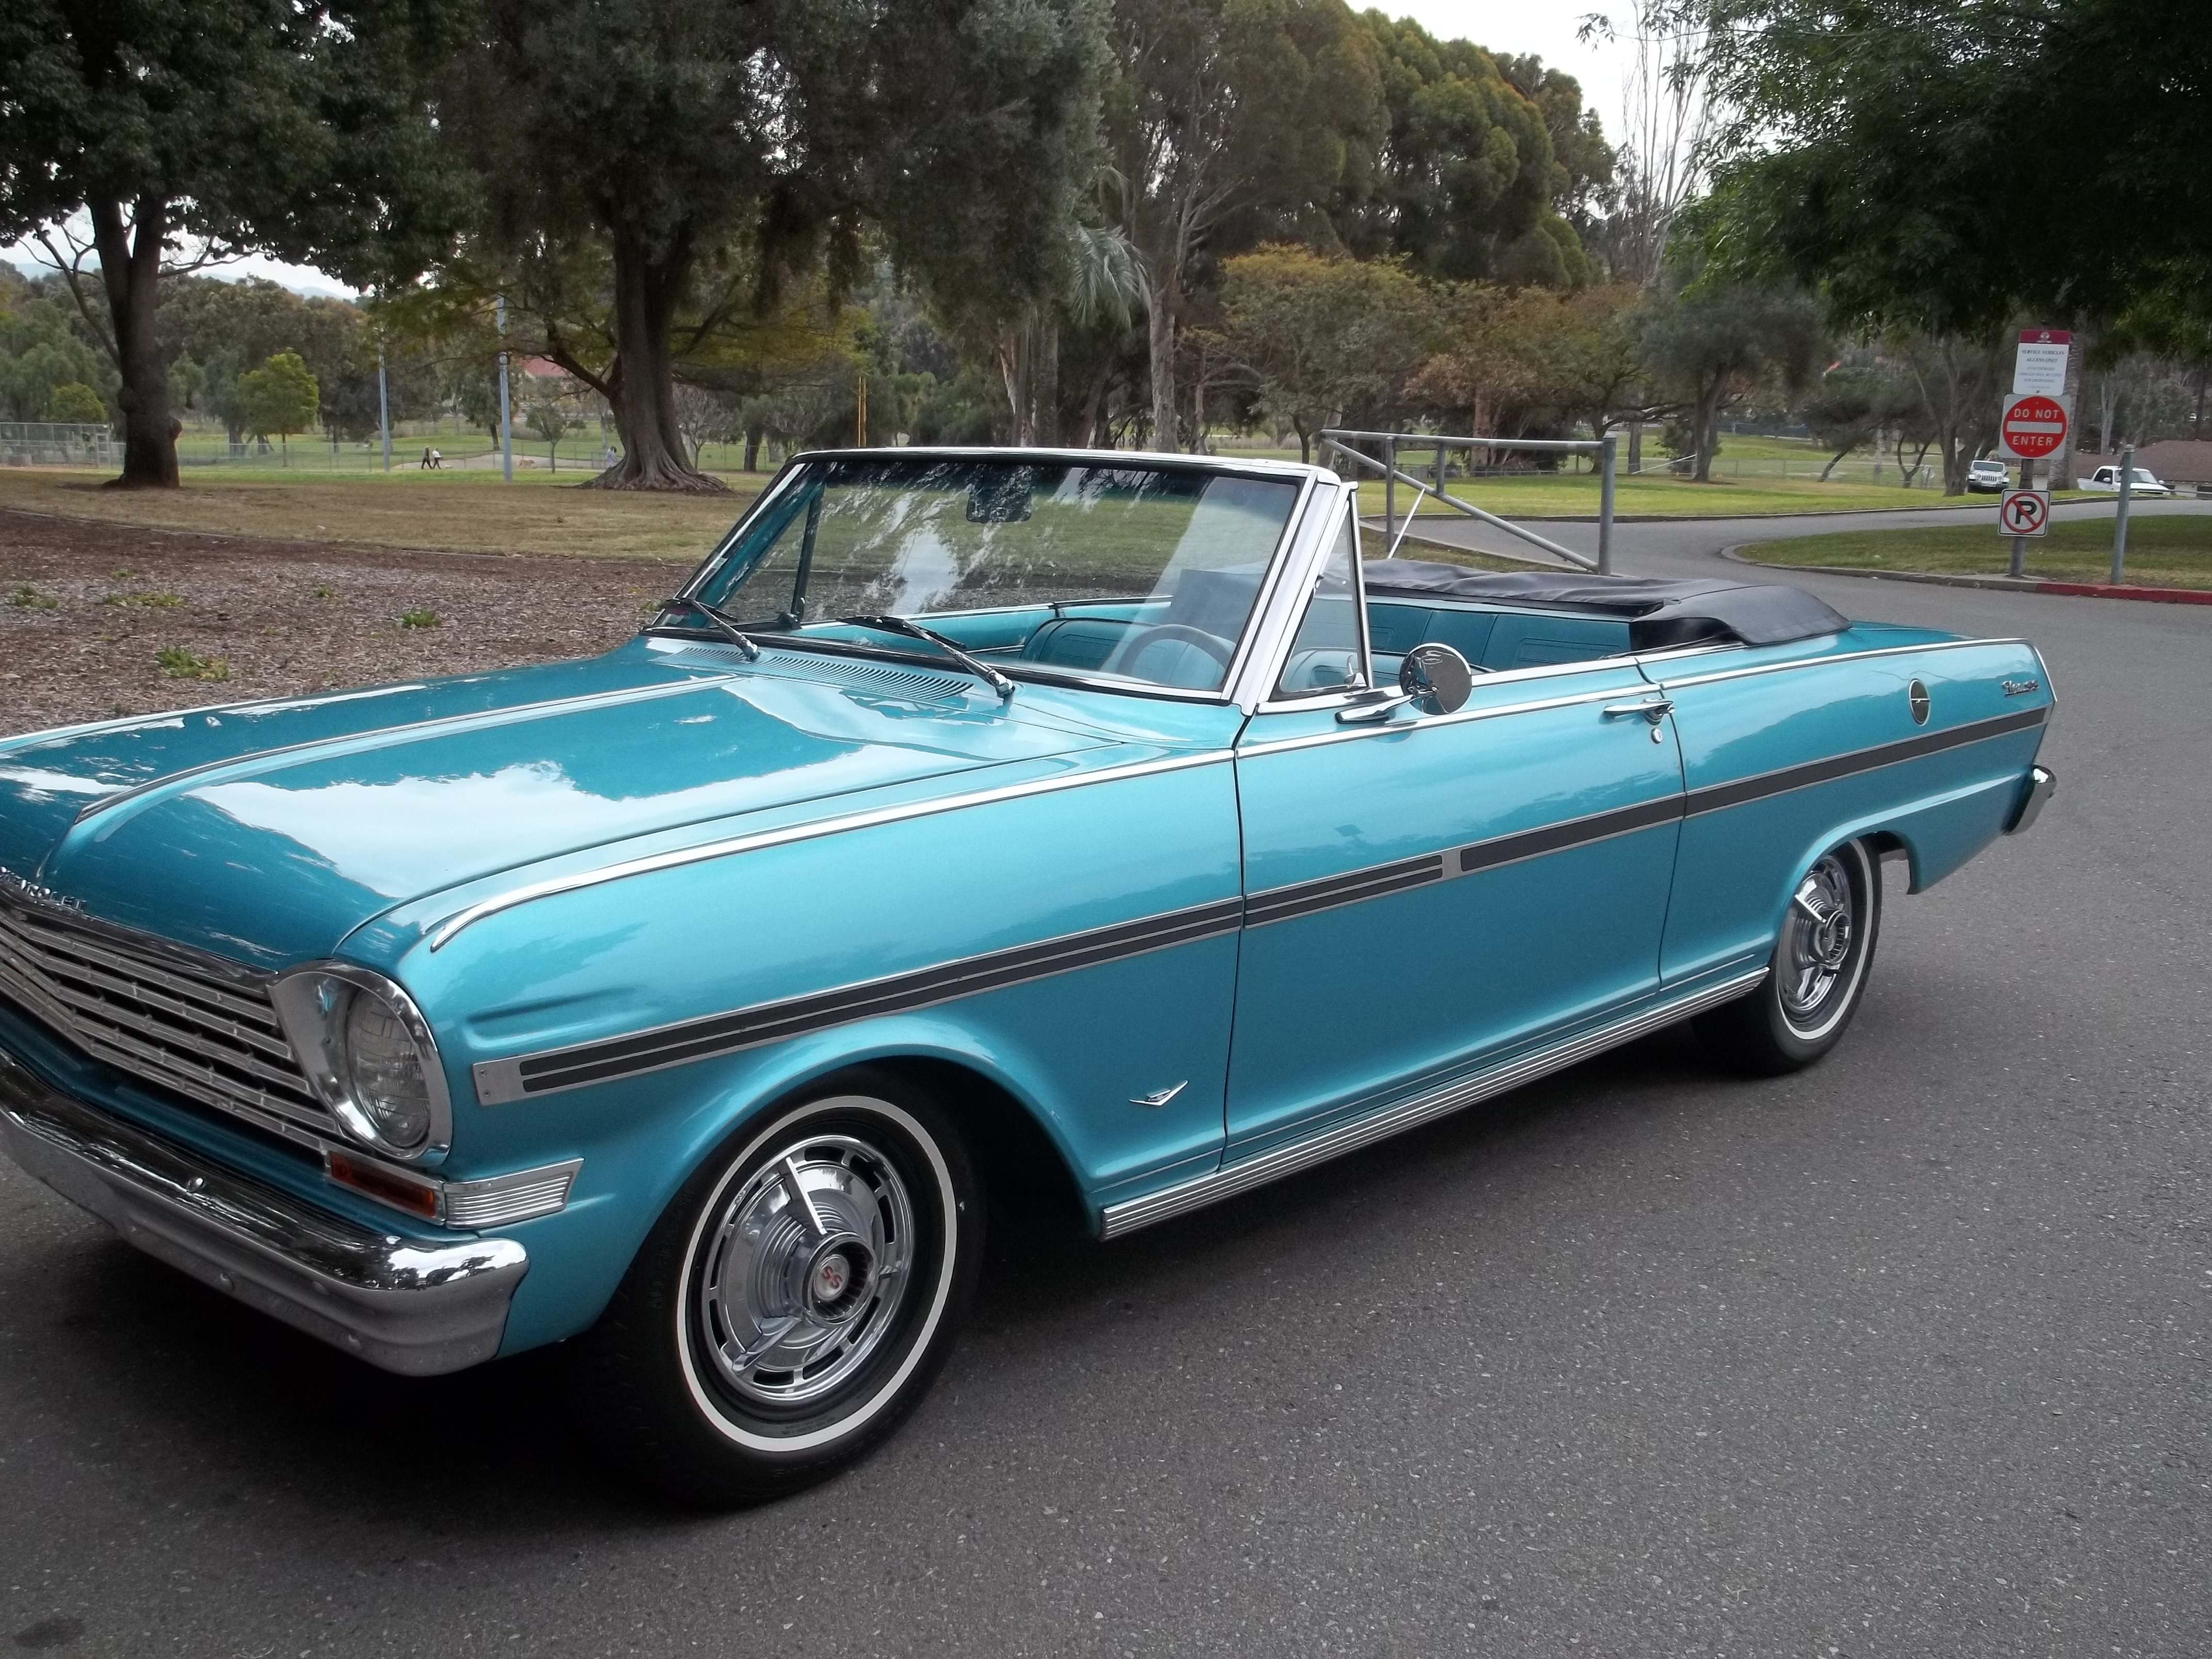 convertible cars for sale near me lovely 1963 chevy nova ss convertible used cars. Black Bedroom Furniture Sets. Home Design Ideas